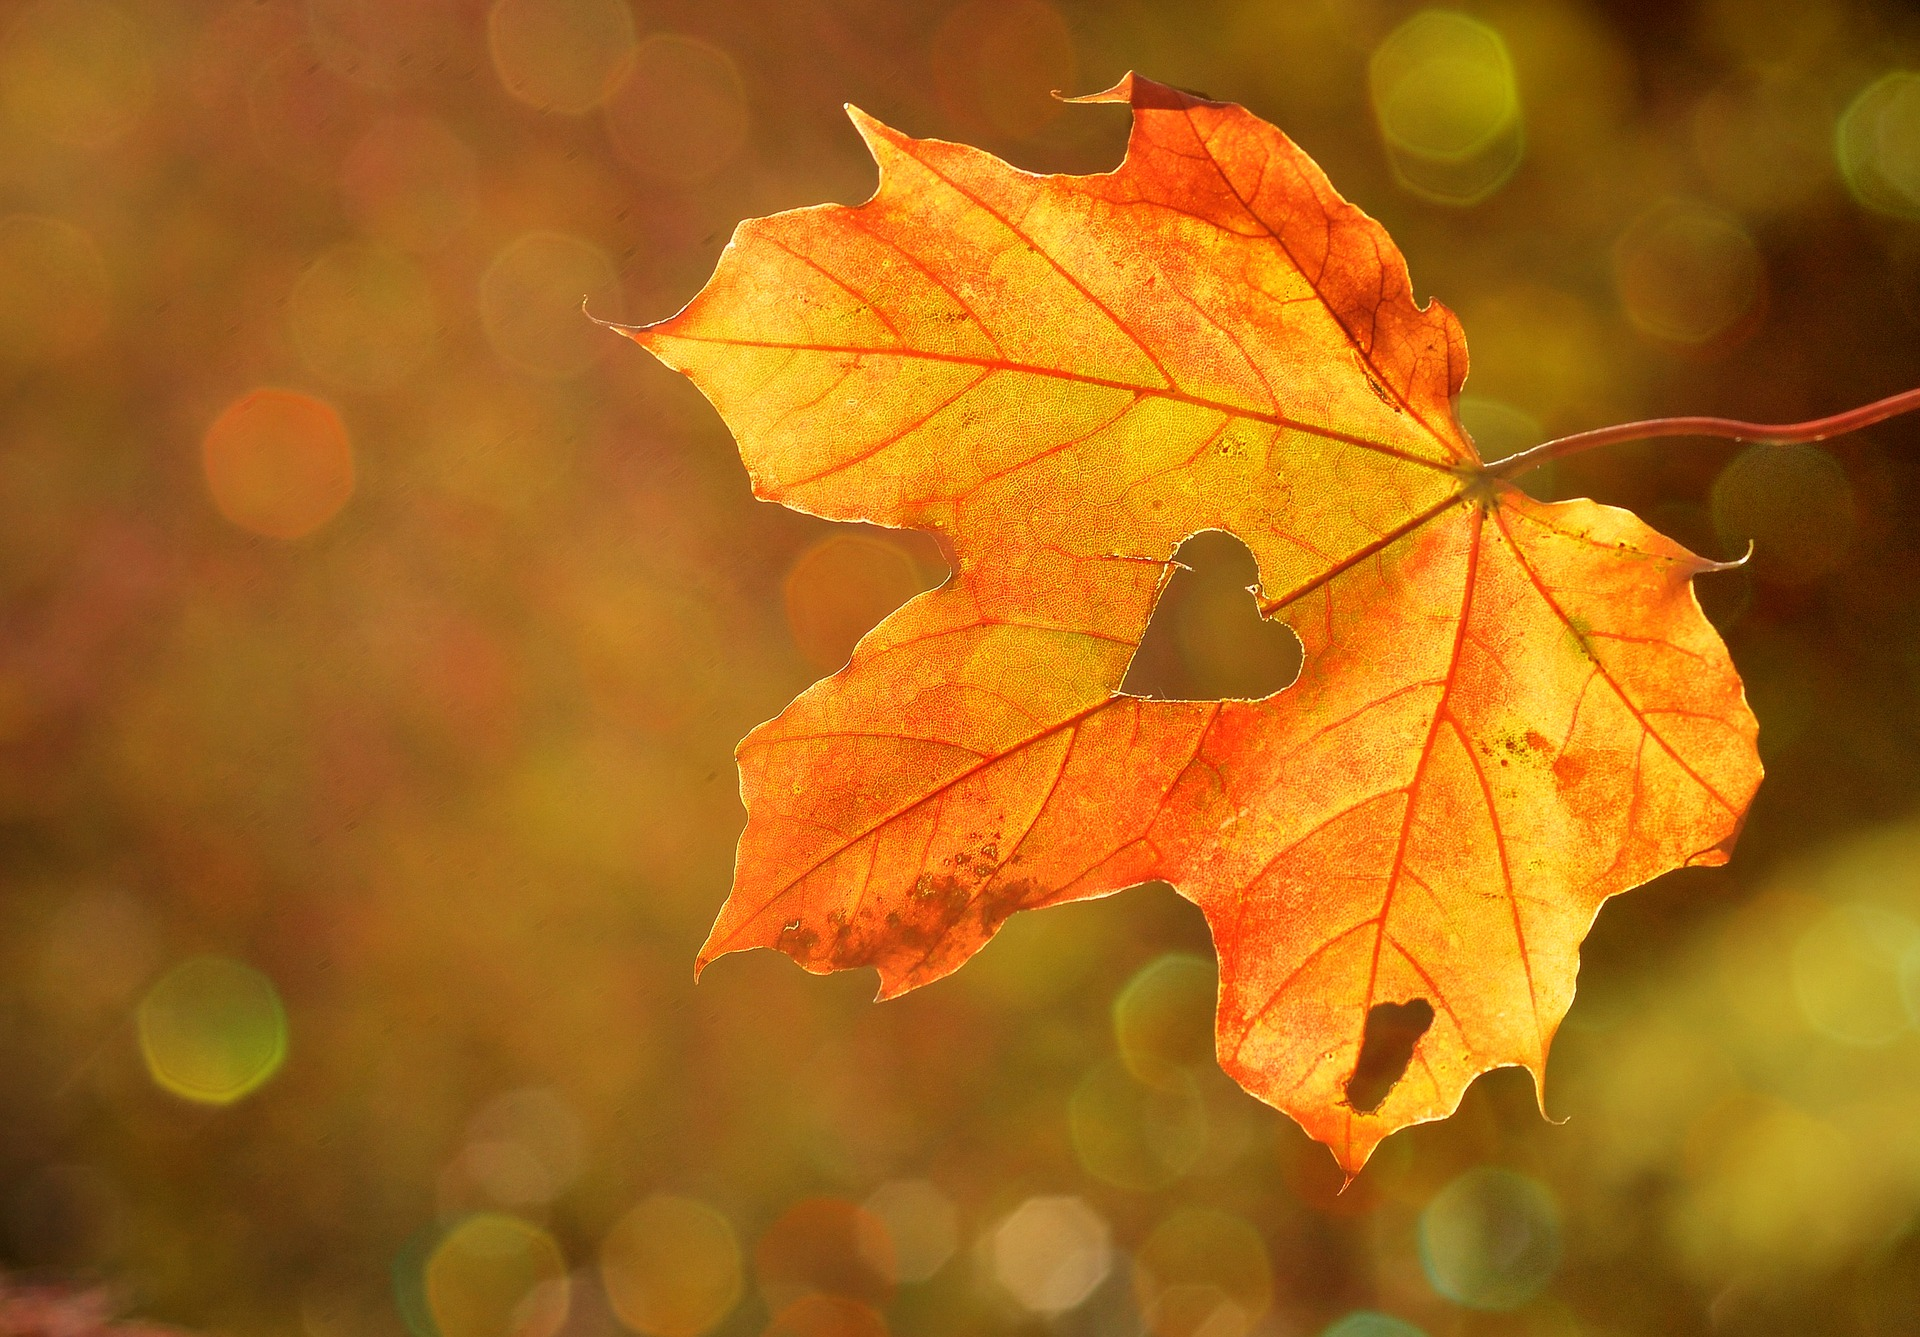 5. Une feuille - A leaf -